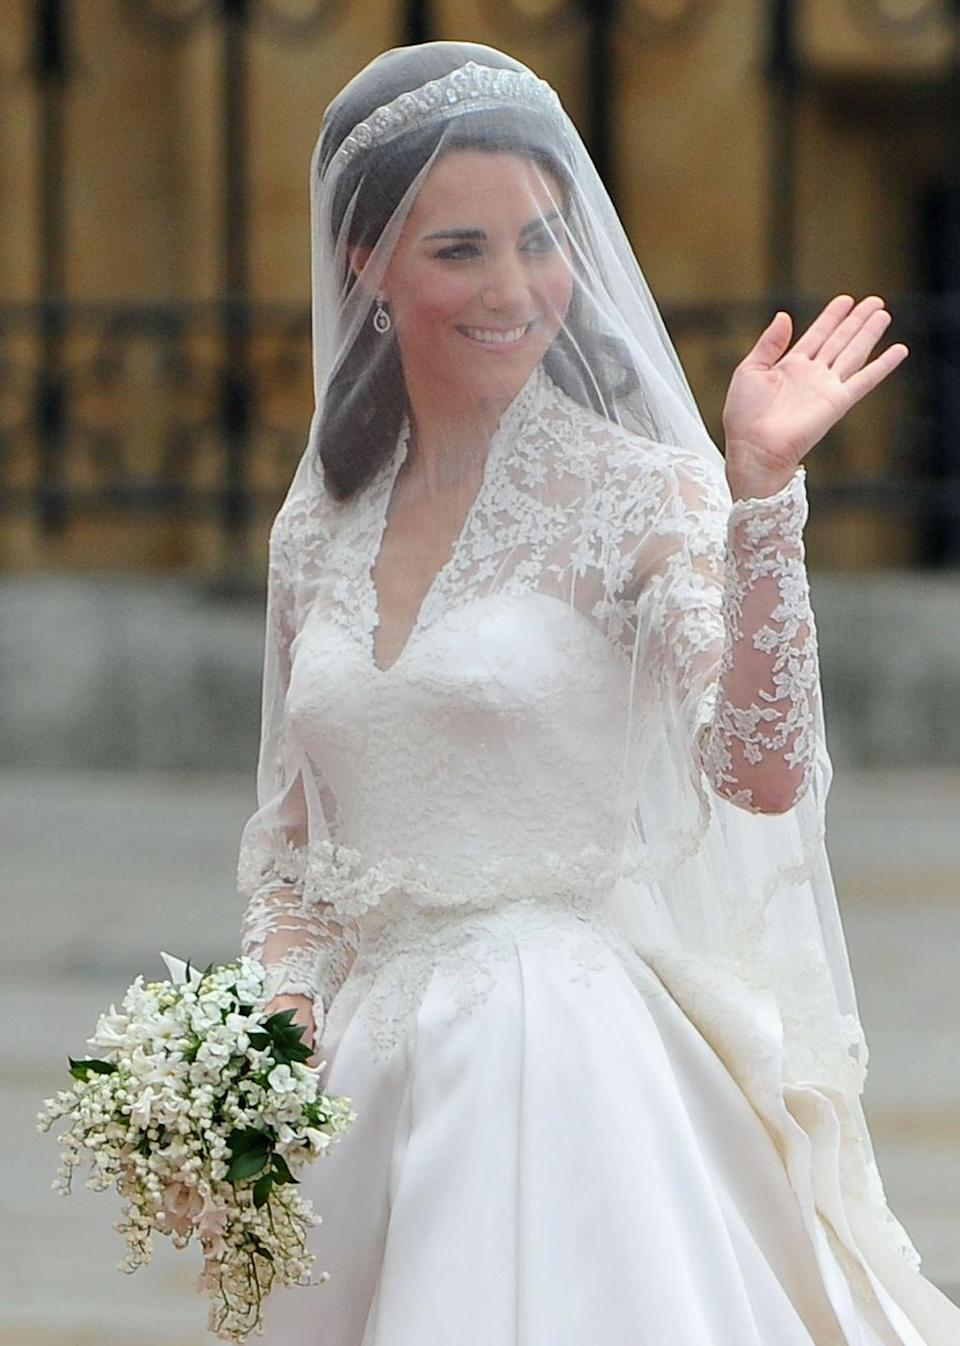 """<p>The Duchess of Cambridge had <a href=""""https://www.townandcountrymag.com/society/tradition/g20527984/meghan-markle-prince-harry-kate-middleton-prince-william-royal-wedding-differences-comparison/"""" rel=""""nofollow noopener"""" target=""""_blank"""" data-ylk=""""slk:flowers embroidered around the edge"""" class=""""link rapid-noclick-resp"""">flowers embroidered around the edge</a> of her veil to match her dress.</p>"""